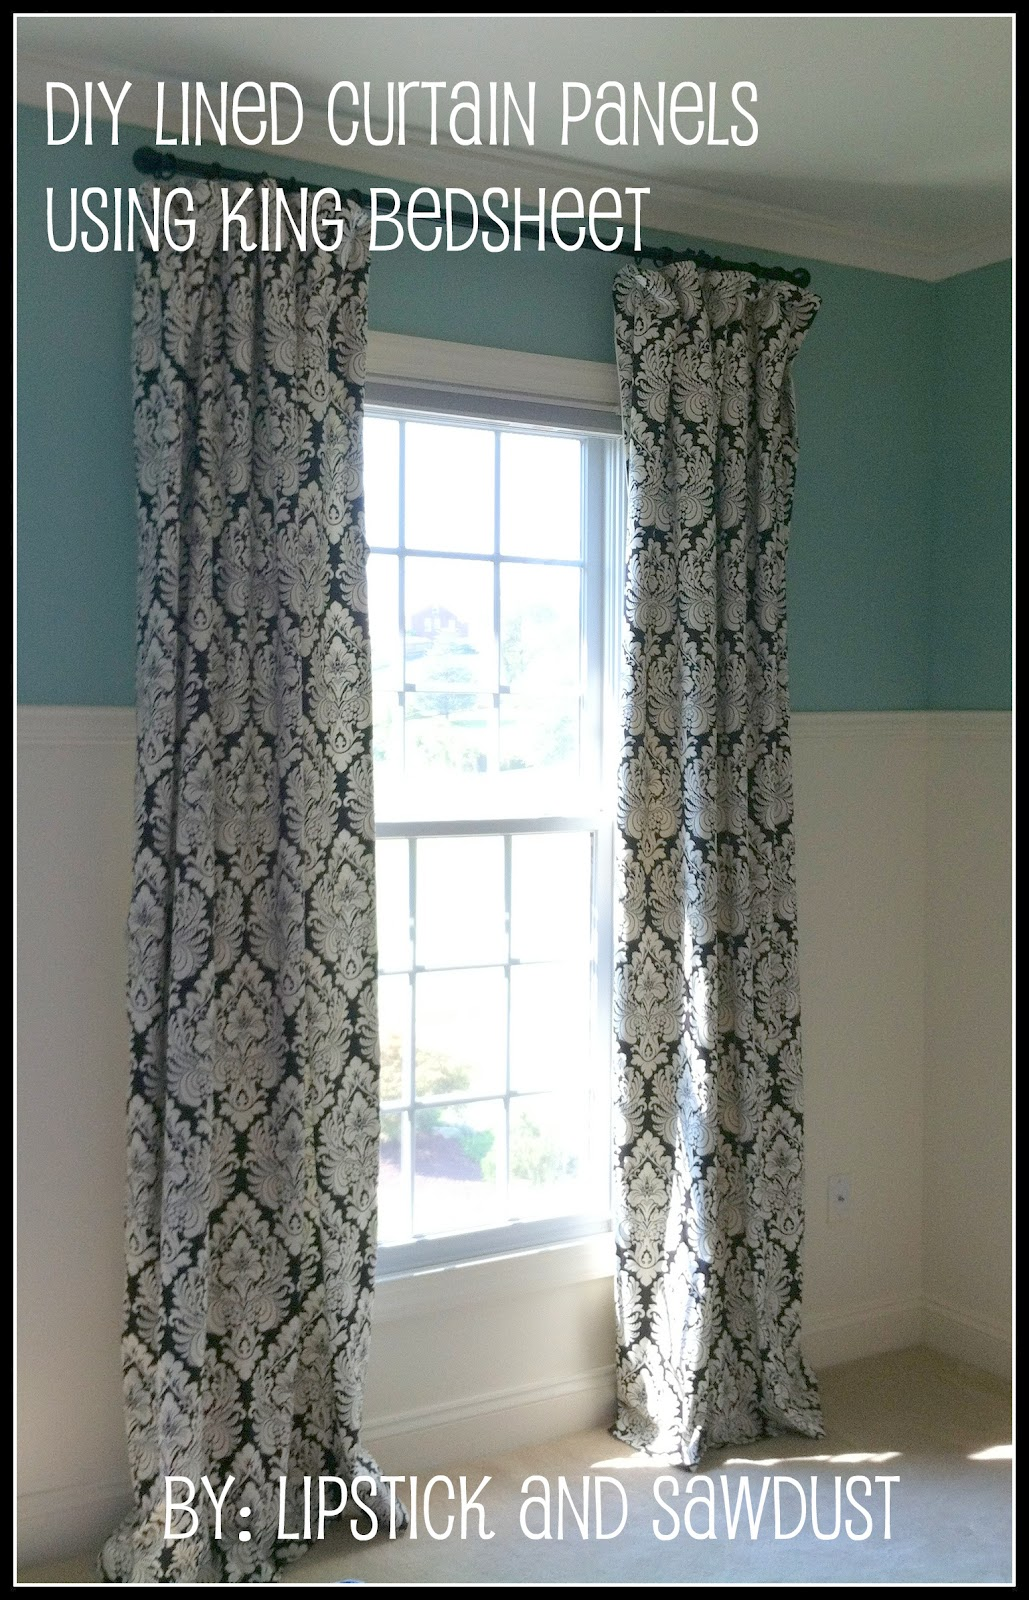 Lipstick and Sawdust: DIY Curtain Panels Using Bedsheets ...